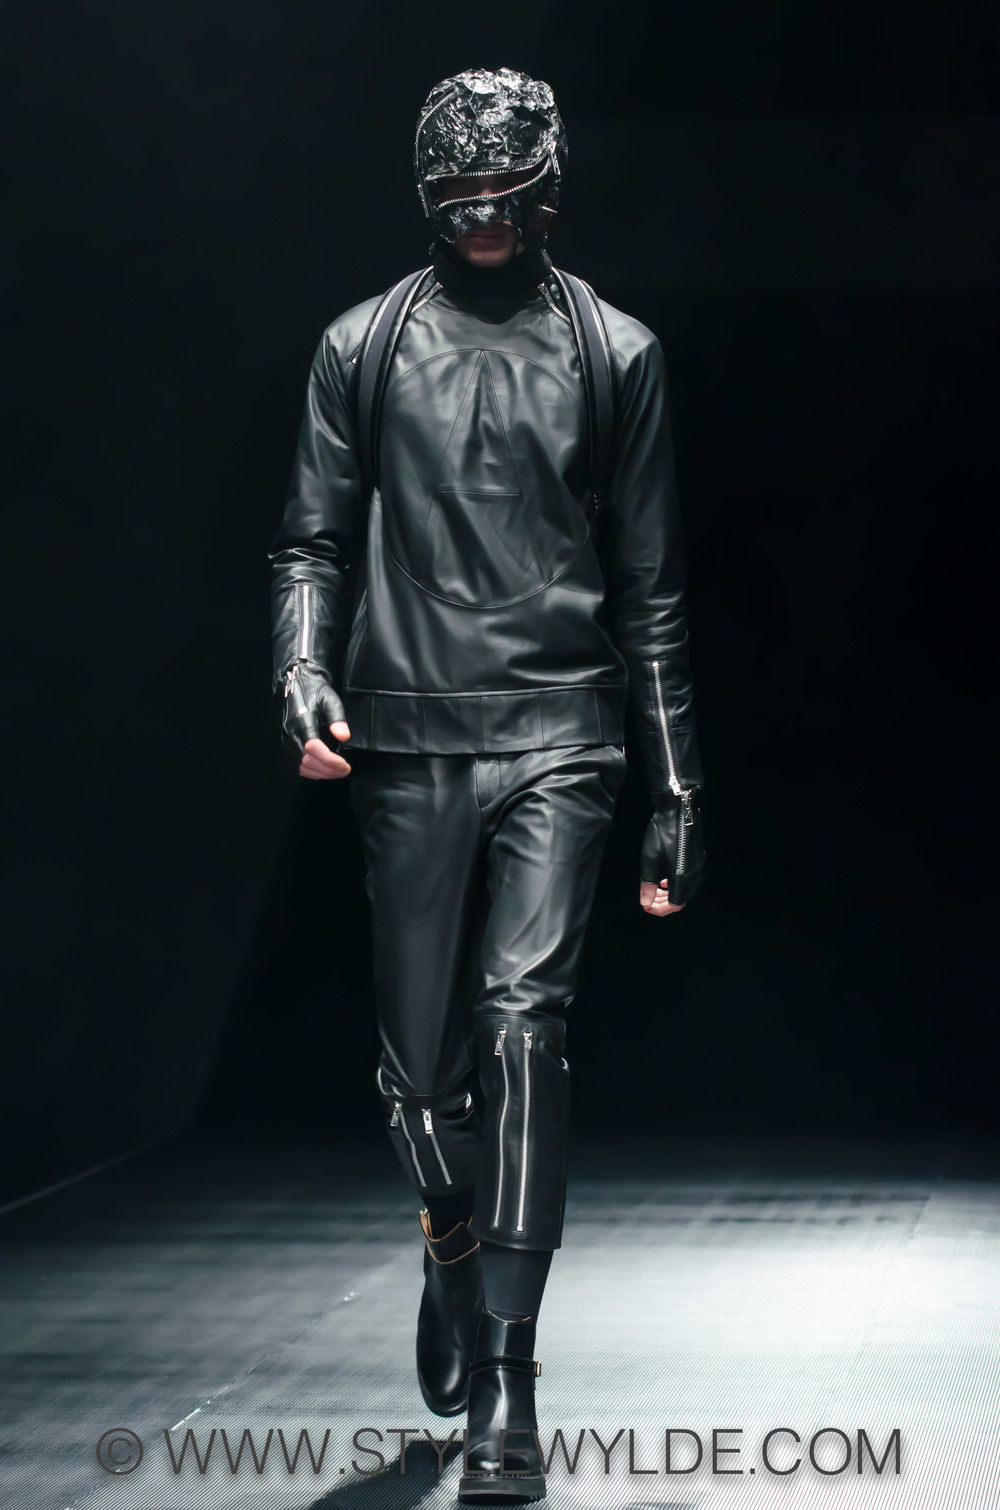 StyleWylde_99percentIS_AW14_edited (1 of 1)-3.jpg